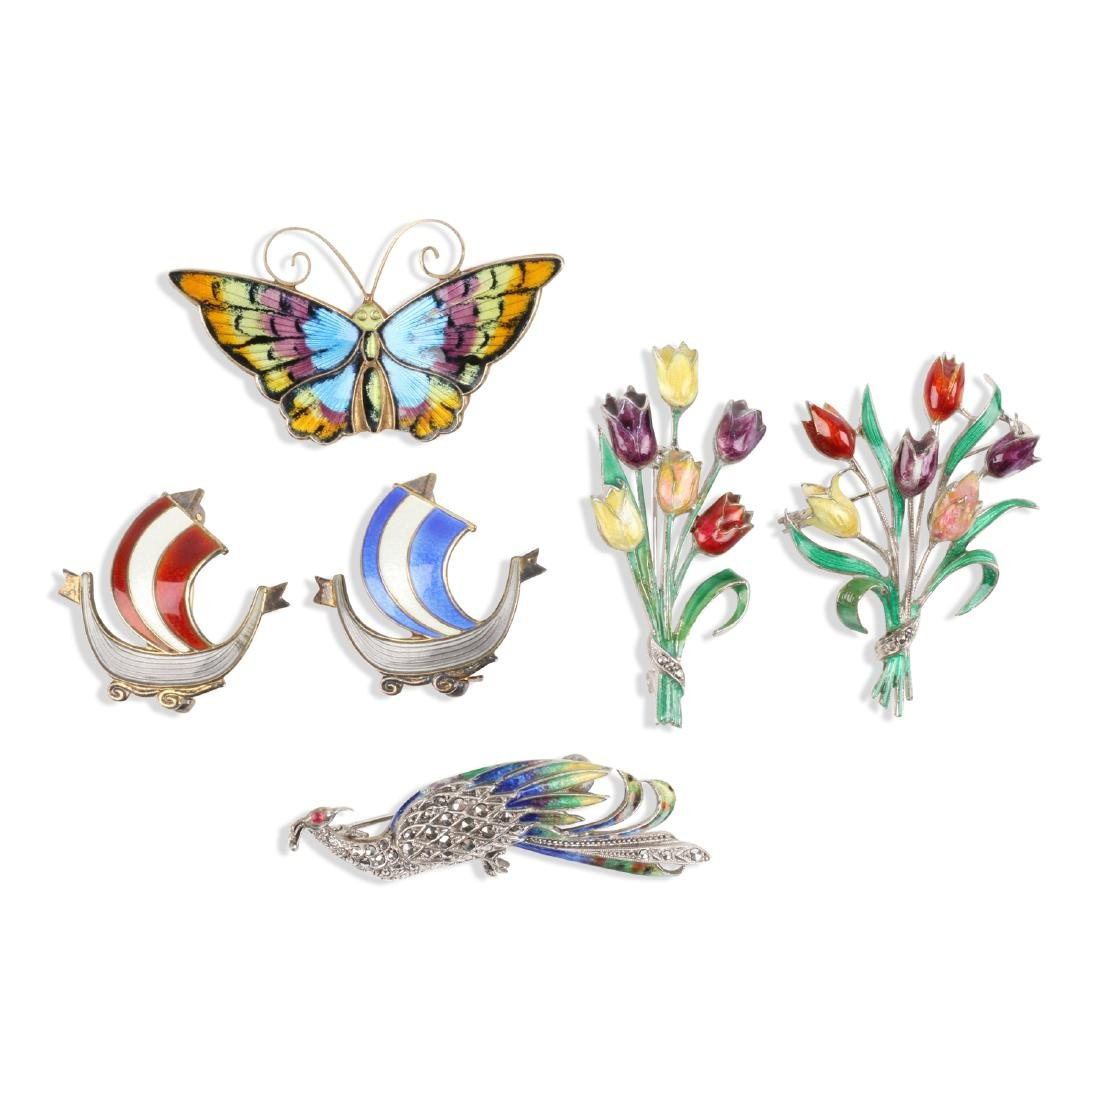 Assorted Enameled Sterling Silver Brooches